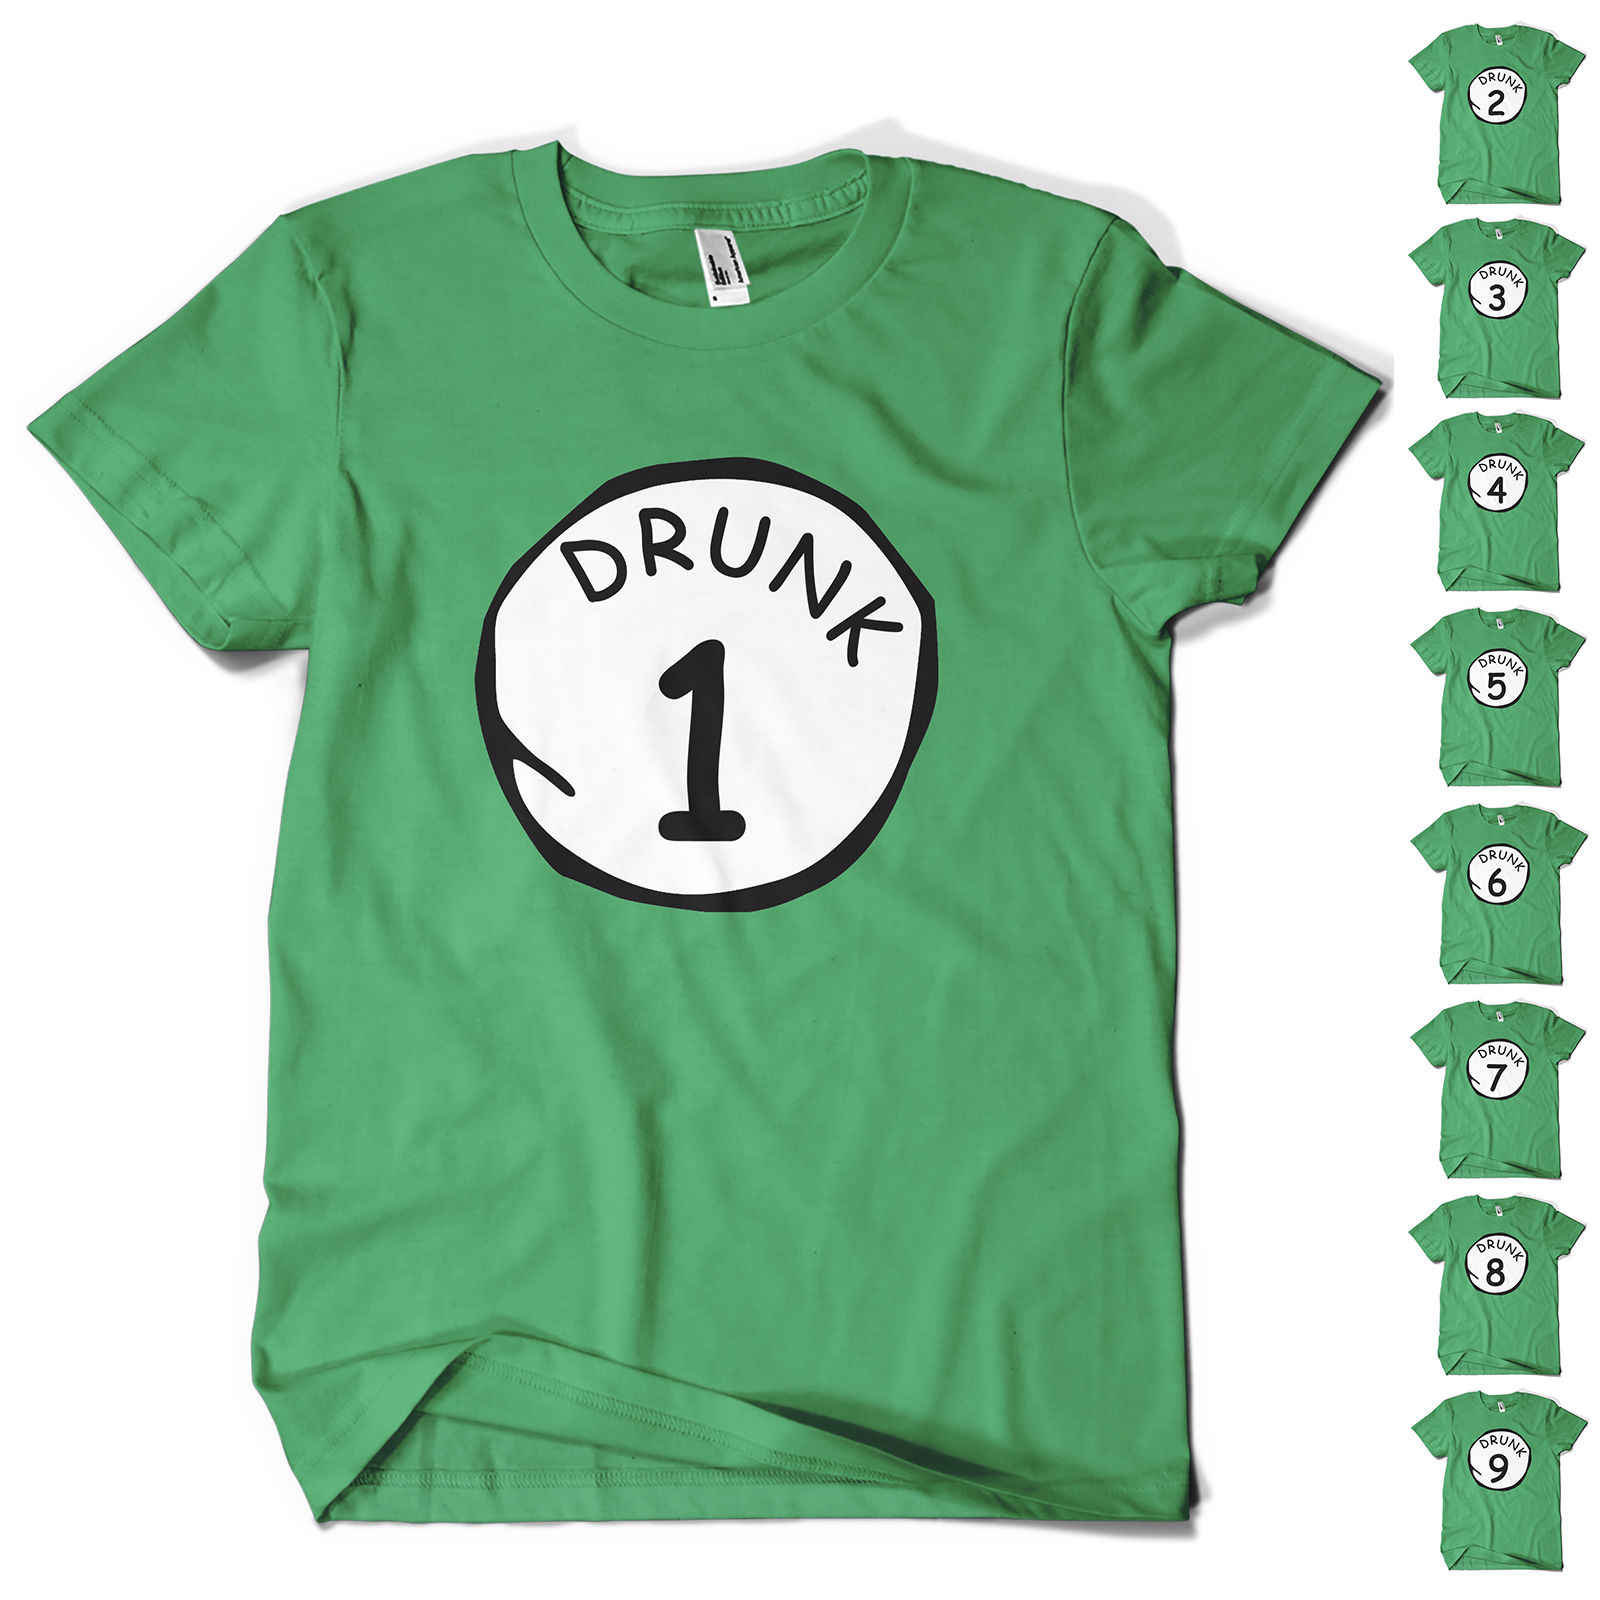 ec1d8a3af St Patricks Day T Shirt Paddys Day DRUNK 1 TO 9 Novelty Funny Beer Drinking  tee